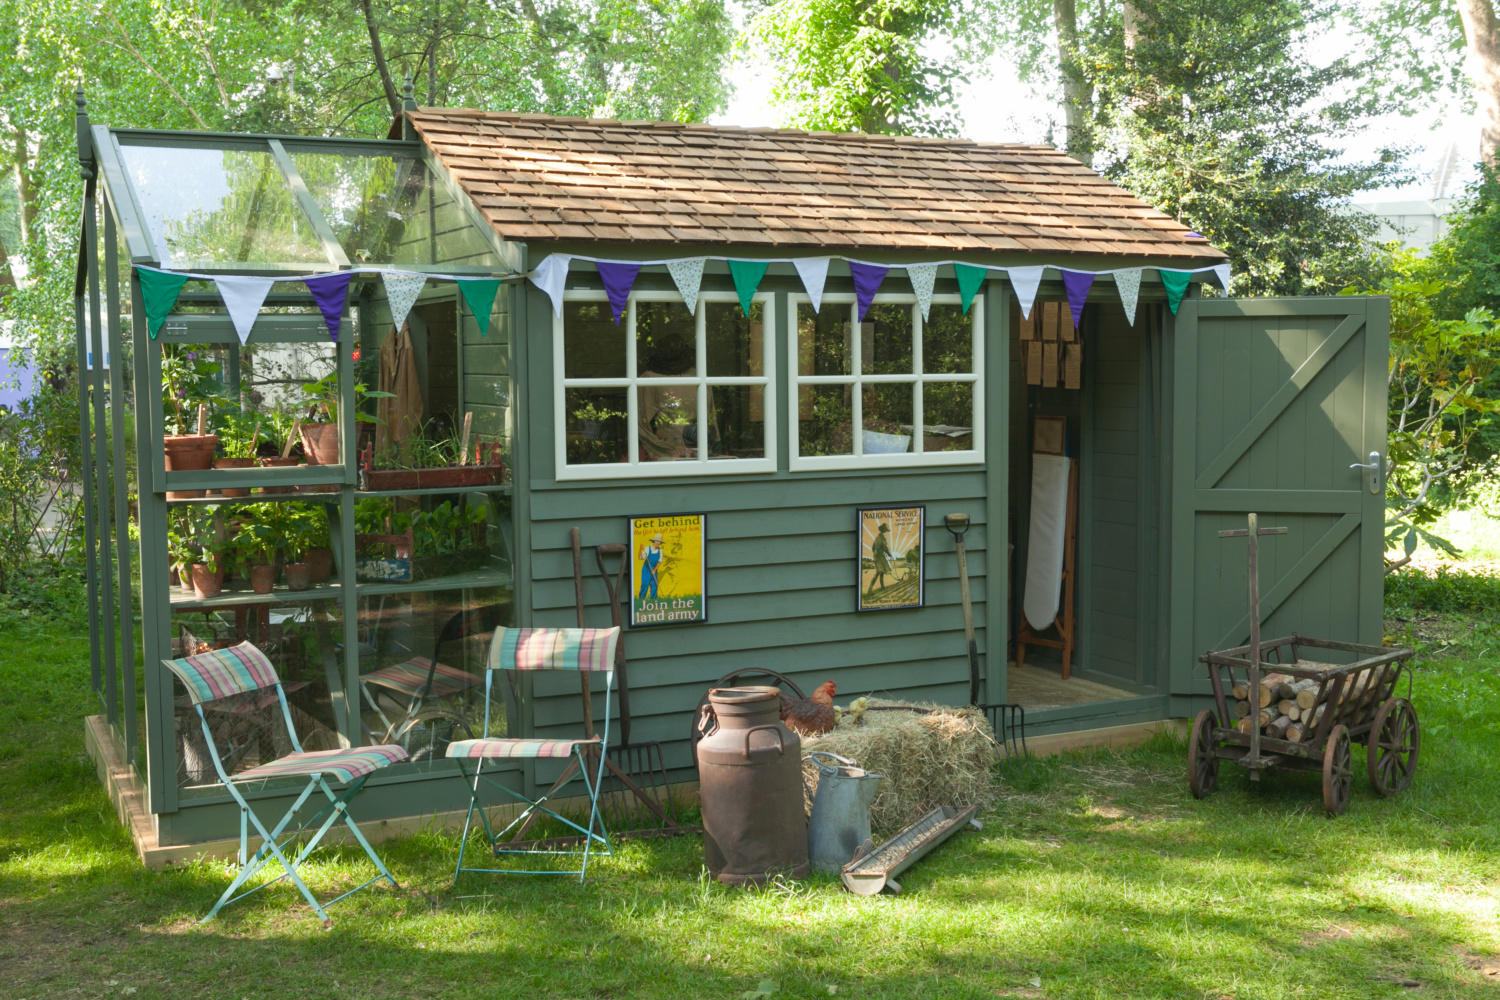 The Women's Land Army exhibit from Chelsea Flower Show 2018. The Holt Fusion garden building is part shed, part greenhouse, making the ideal potting shed.